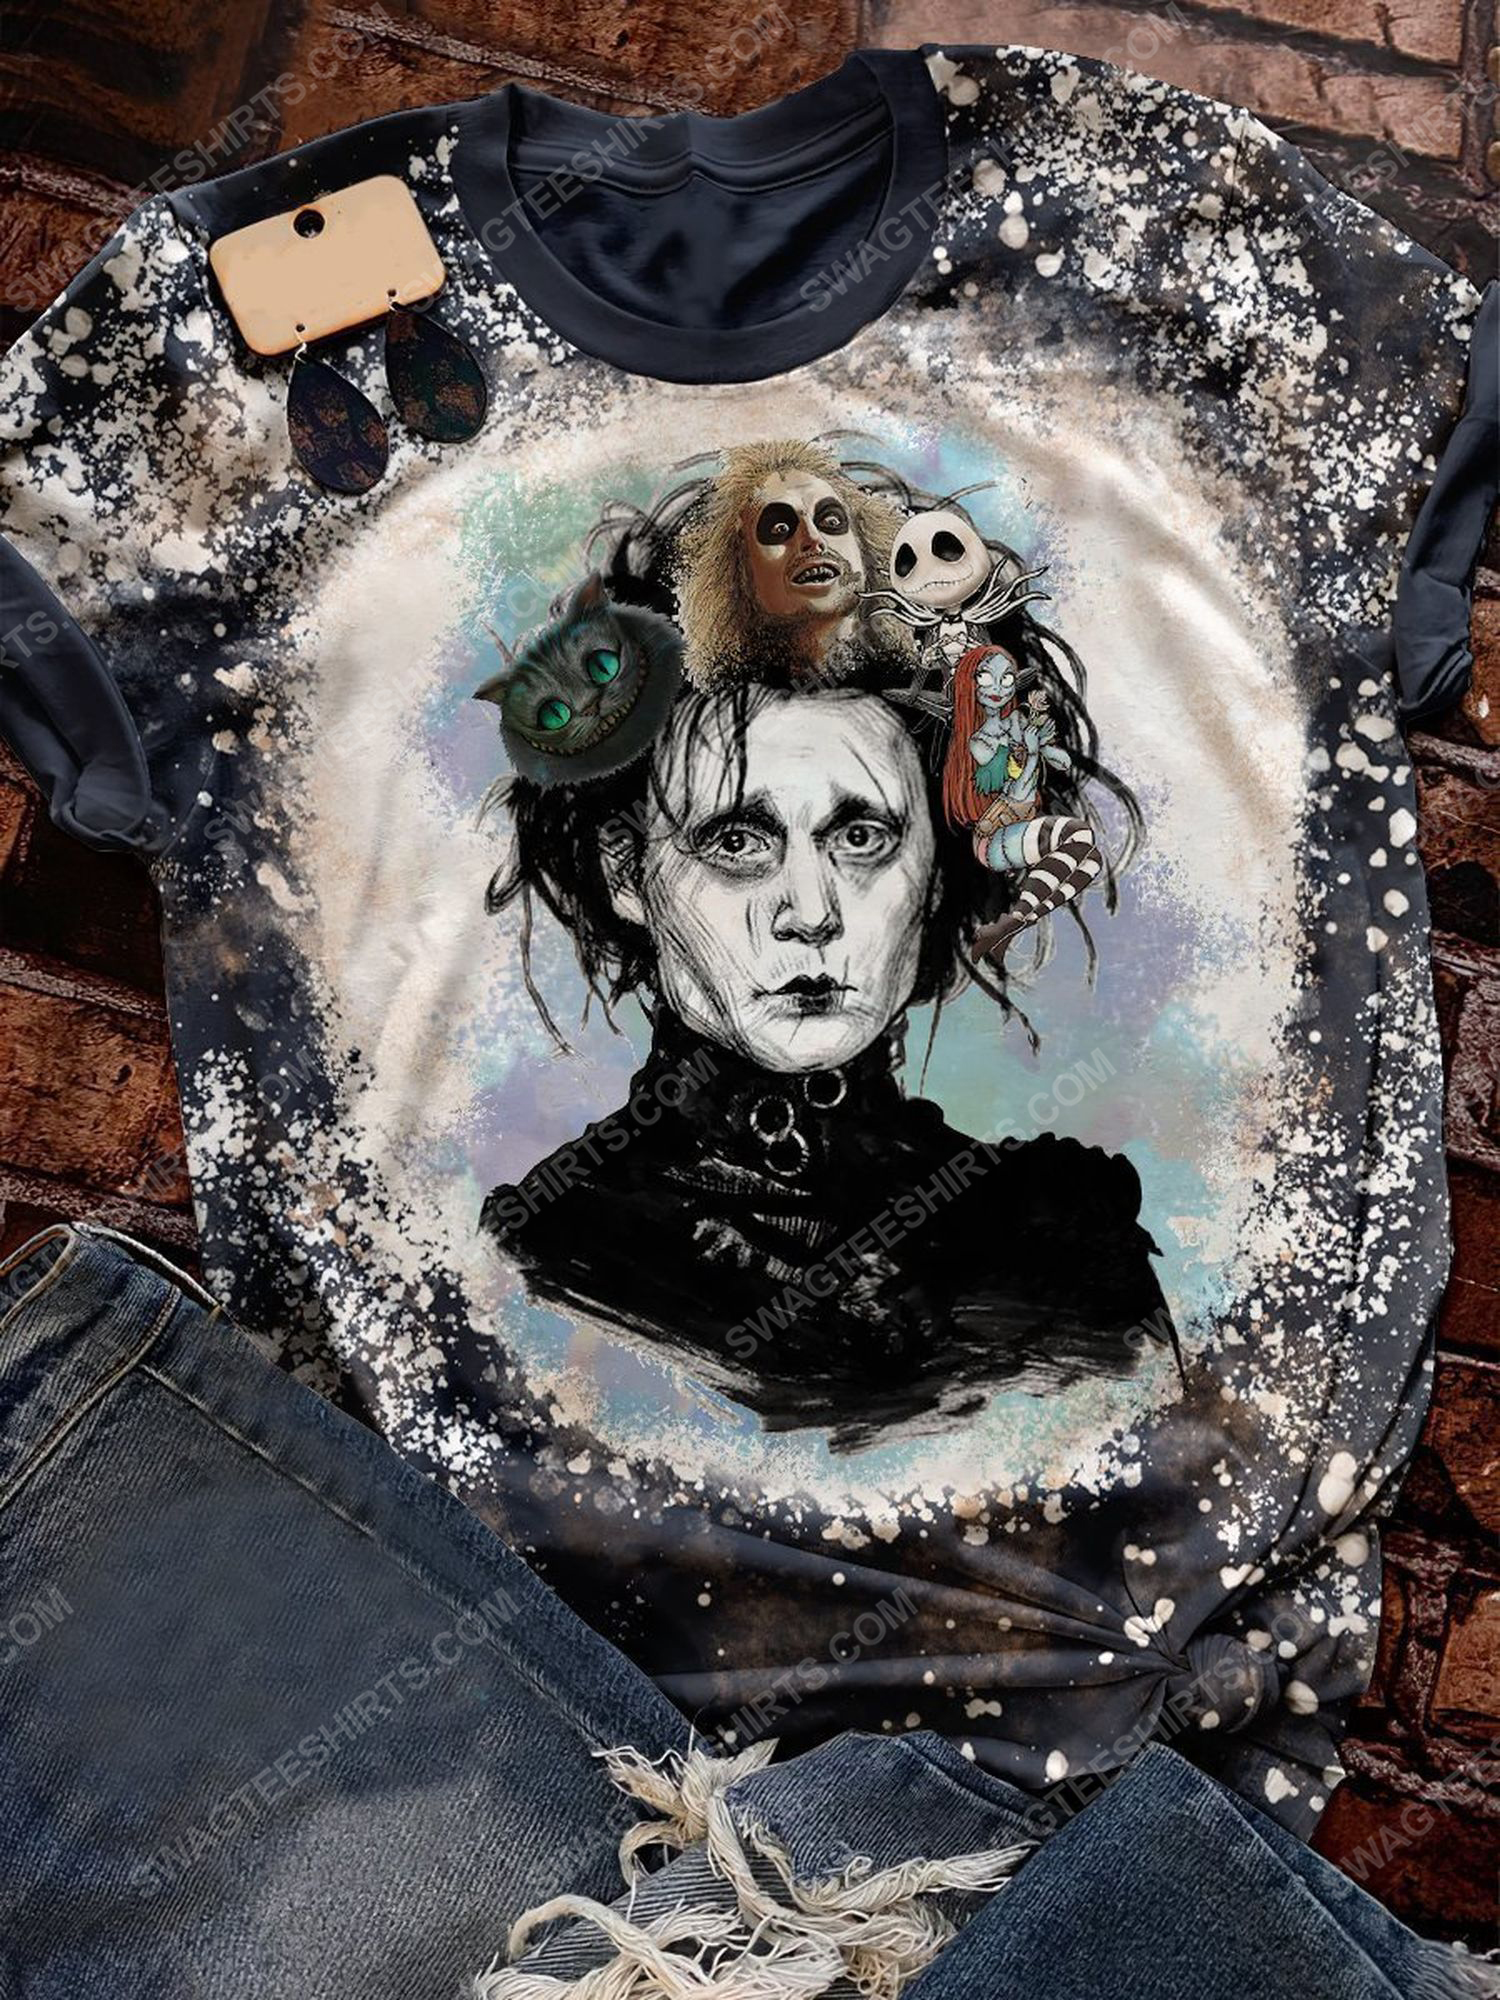 Halloween horror movie characters all over print shirt 1 - Copy (2)